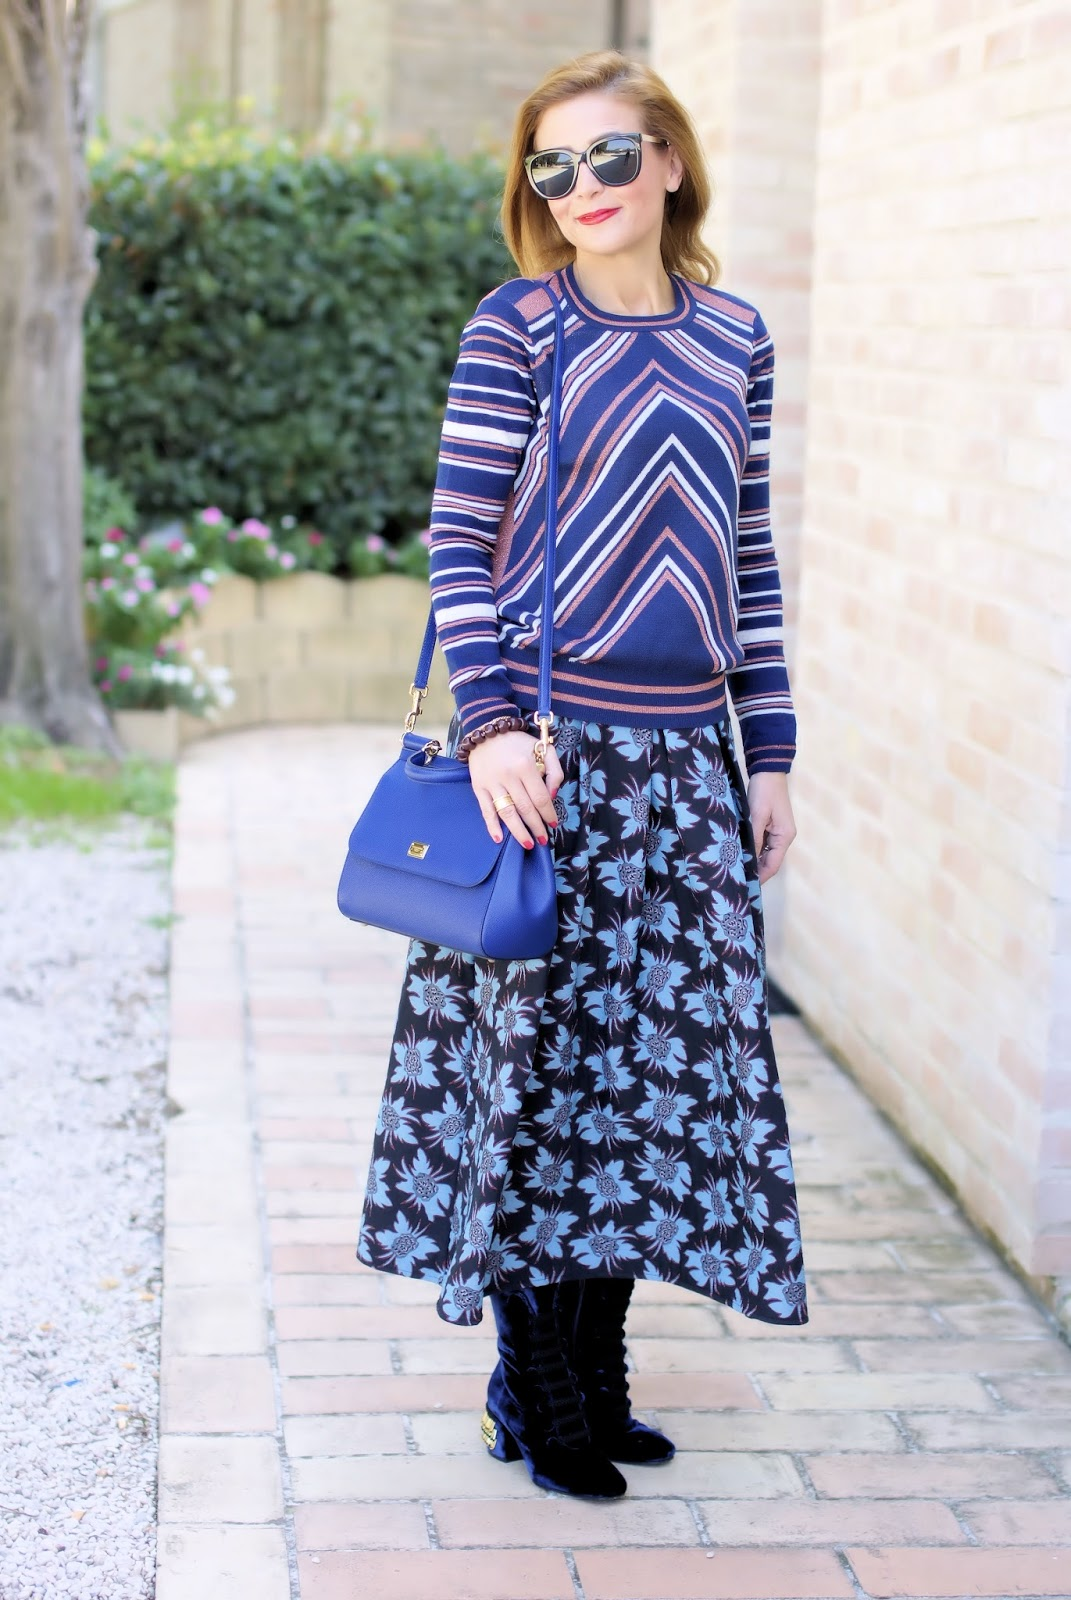 Stripes and flowers: mix of prints outfit with 1.2.3 Paris Pyramide sweater on Fashion and Cookies fashion blog